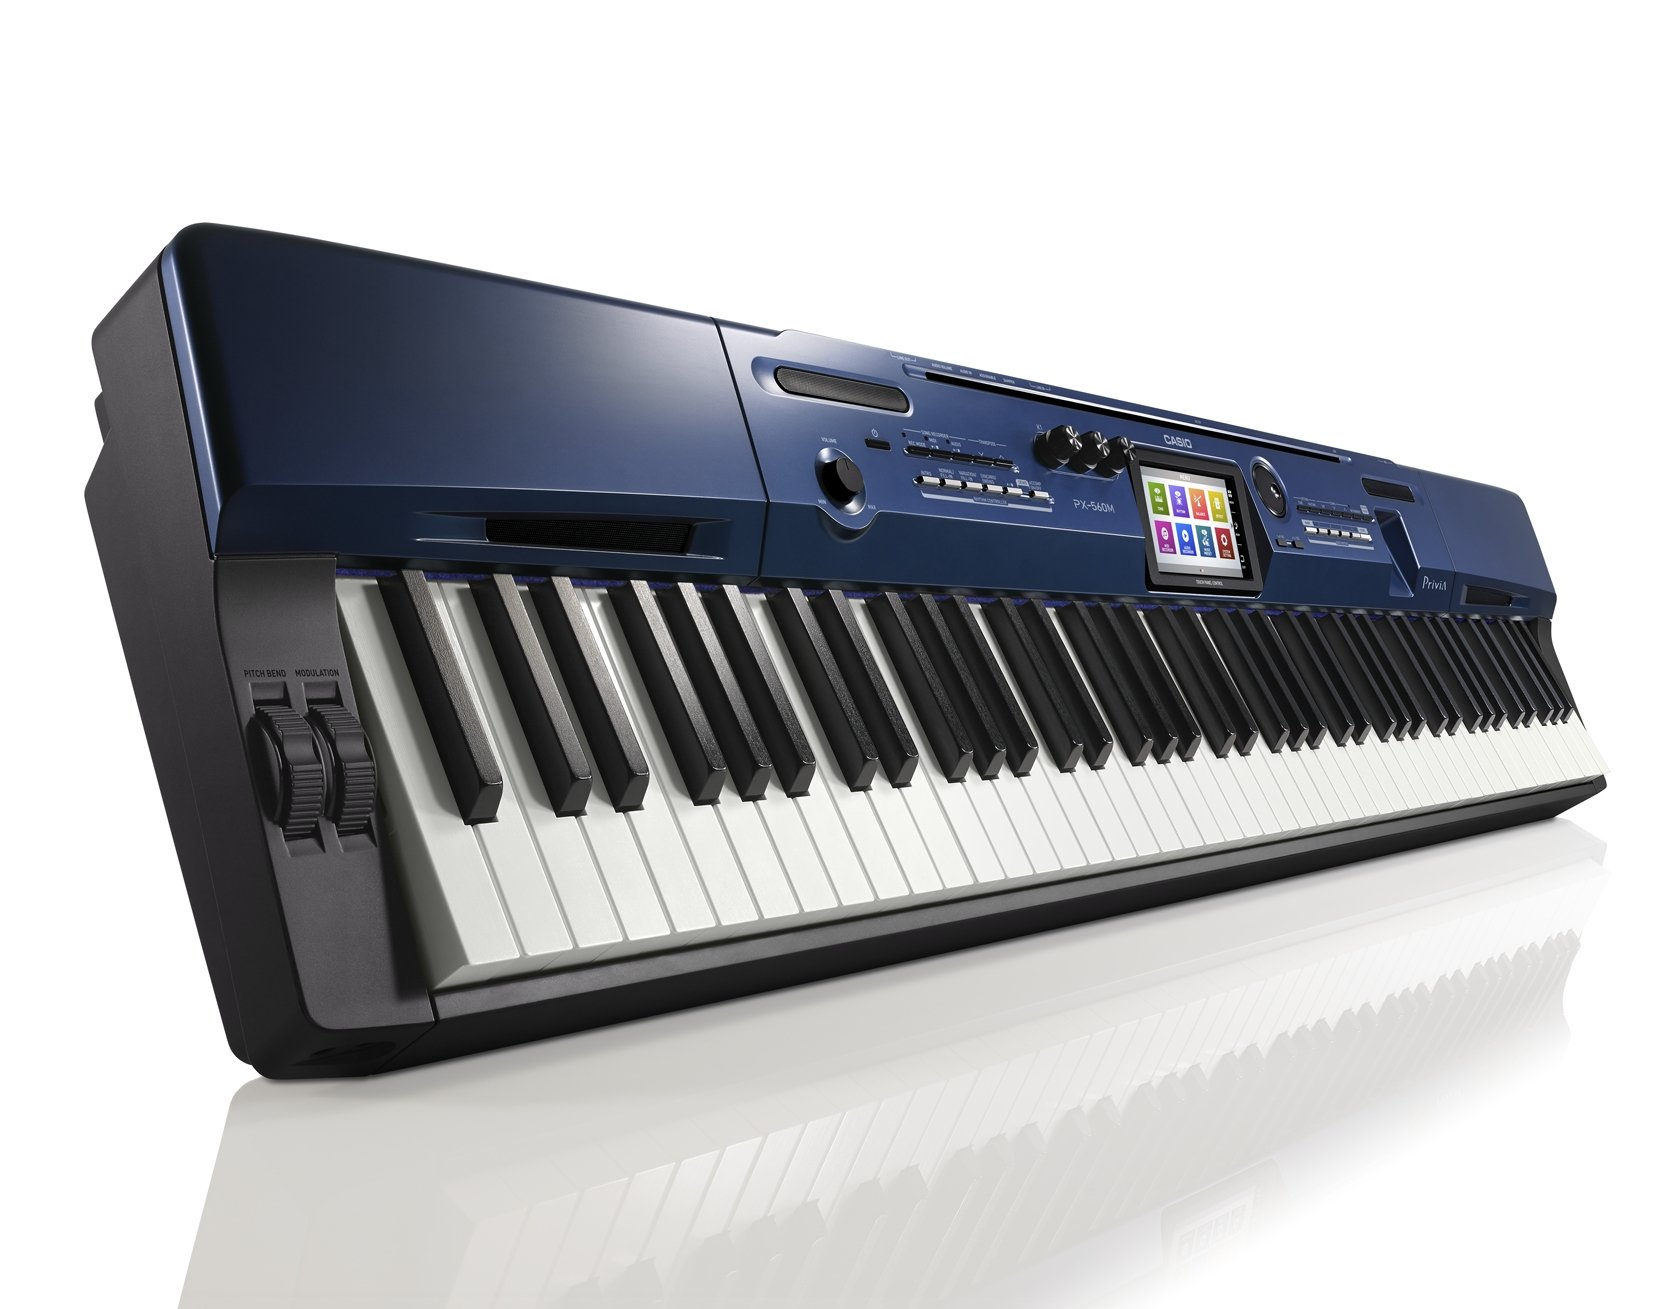 Casio PX 560 Review - User-Friendly